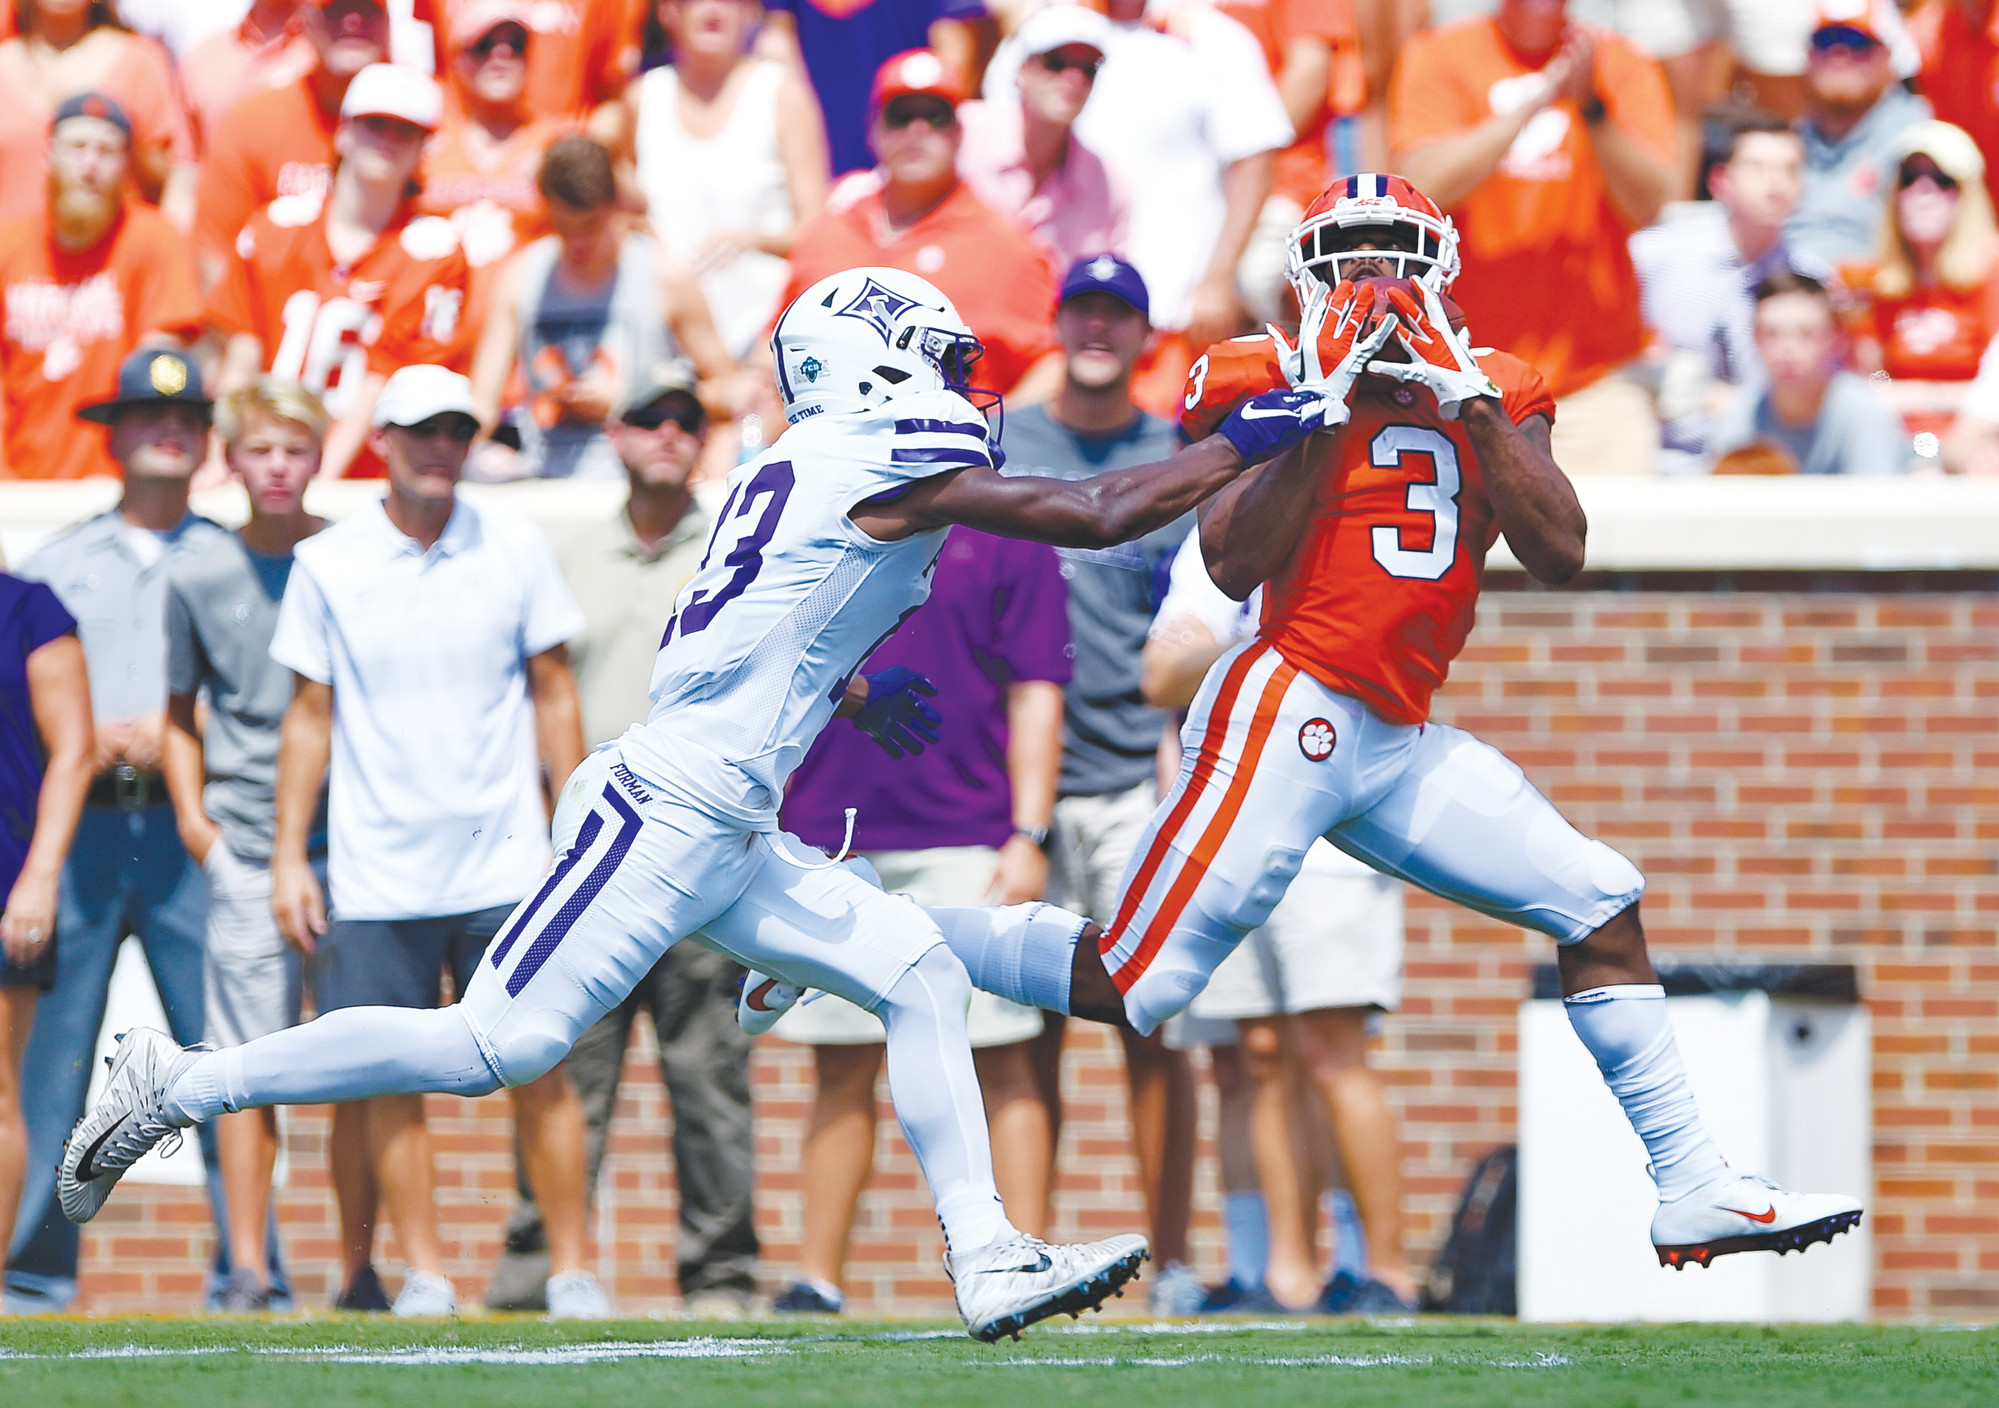 Clemson wide receiver Amari Rodgers (3) pulls in a reception for a touchdown while defended by Furman's Quandarius Weems during the Tigers' 48-7 victory on Saturday in Clemson.